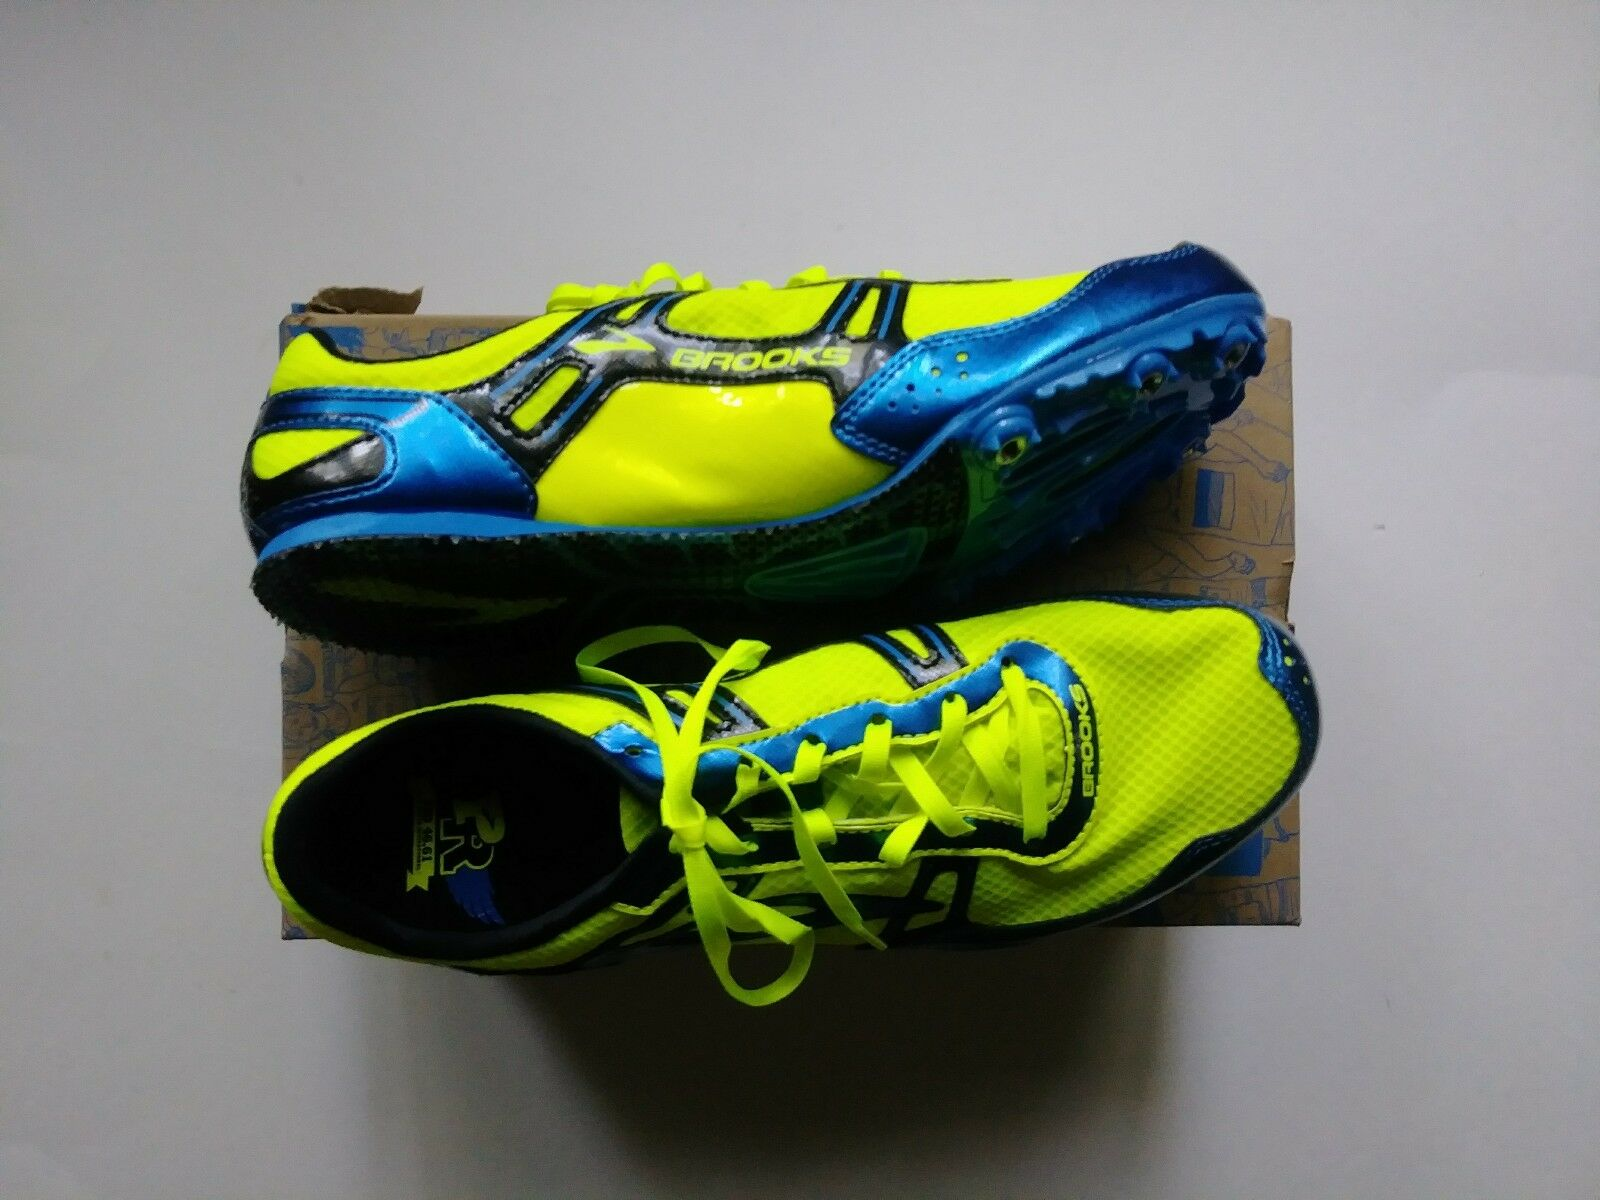 Brooks Mens 9.5 Spiked Running Shoes Neon Bob Hayes Invitational PR MD 46.61 NIB